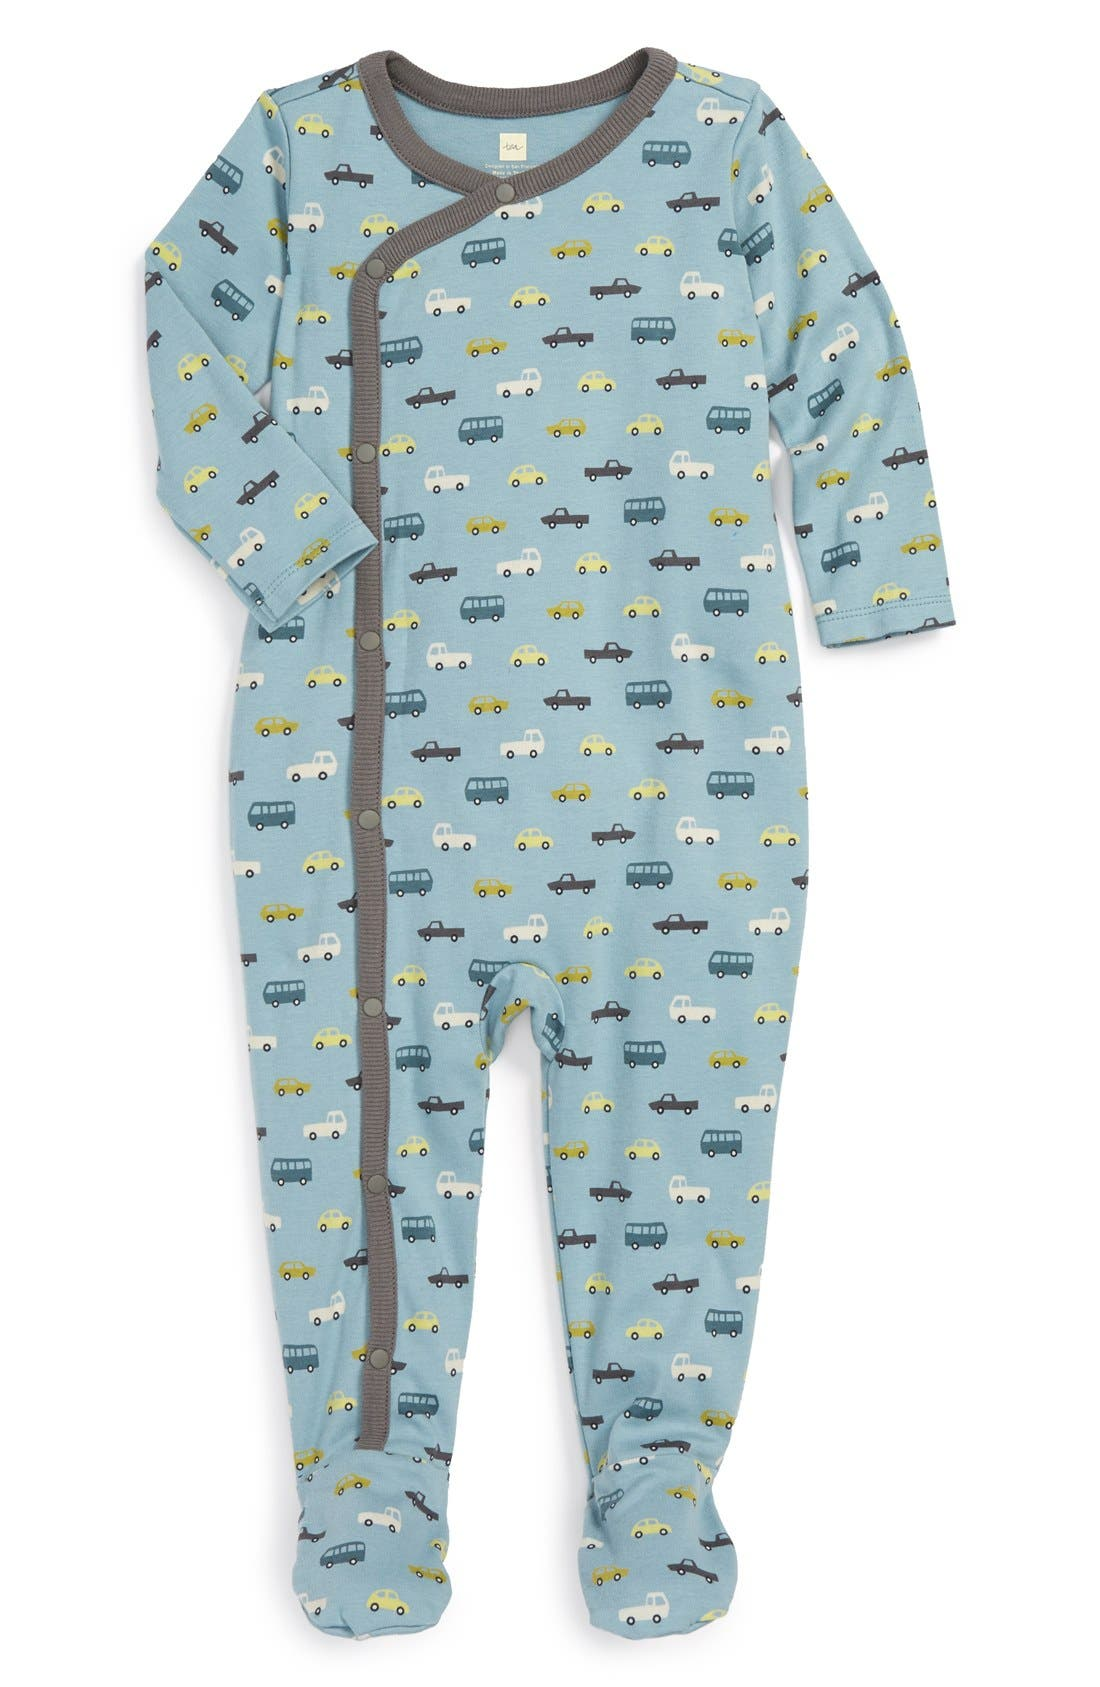 Alternate Image 1 Selected - Tea Collection 'Autobahn' One-Piece (Baby Boys)